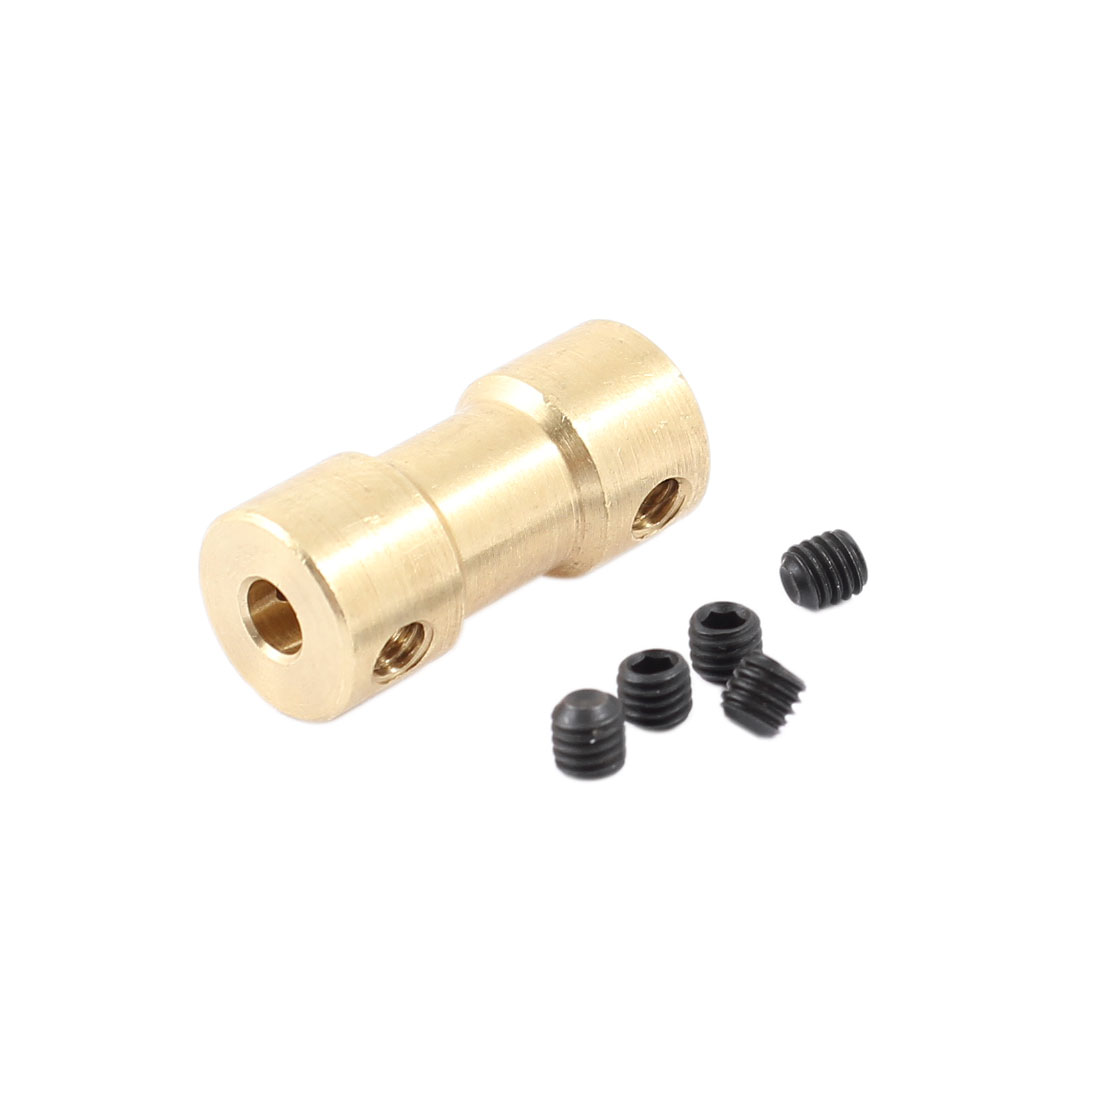 RC Airplane Helicopter 3.17mm to 3mm Brass Motor Shaft Coupling Coupler Connector